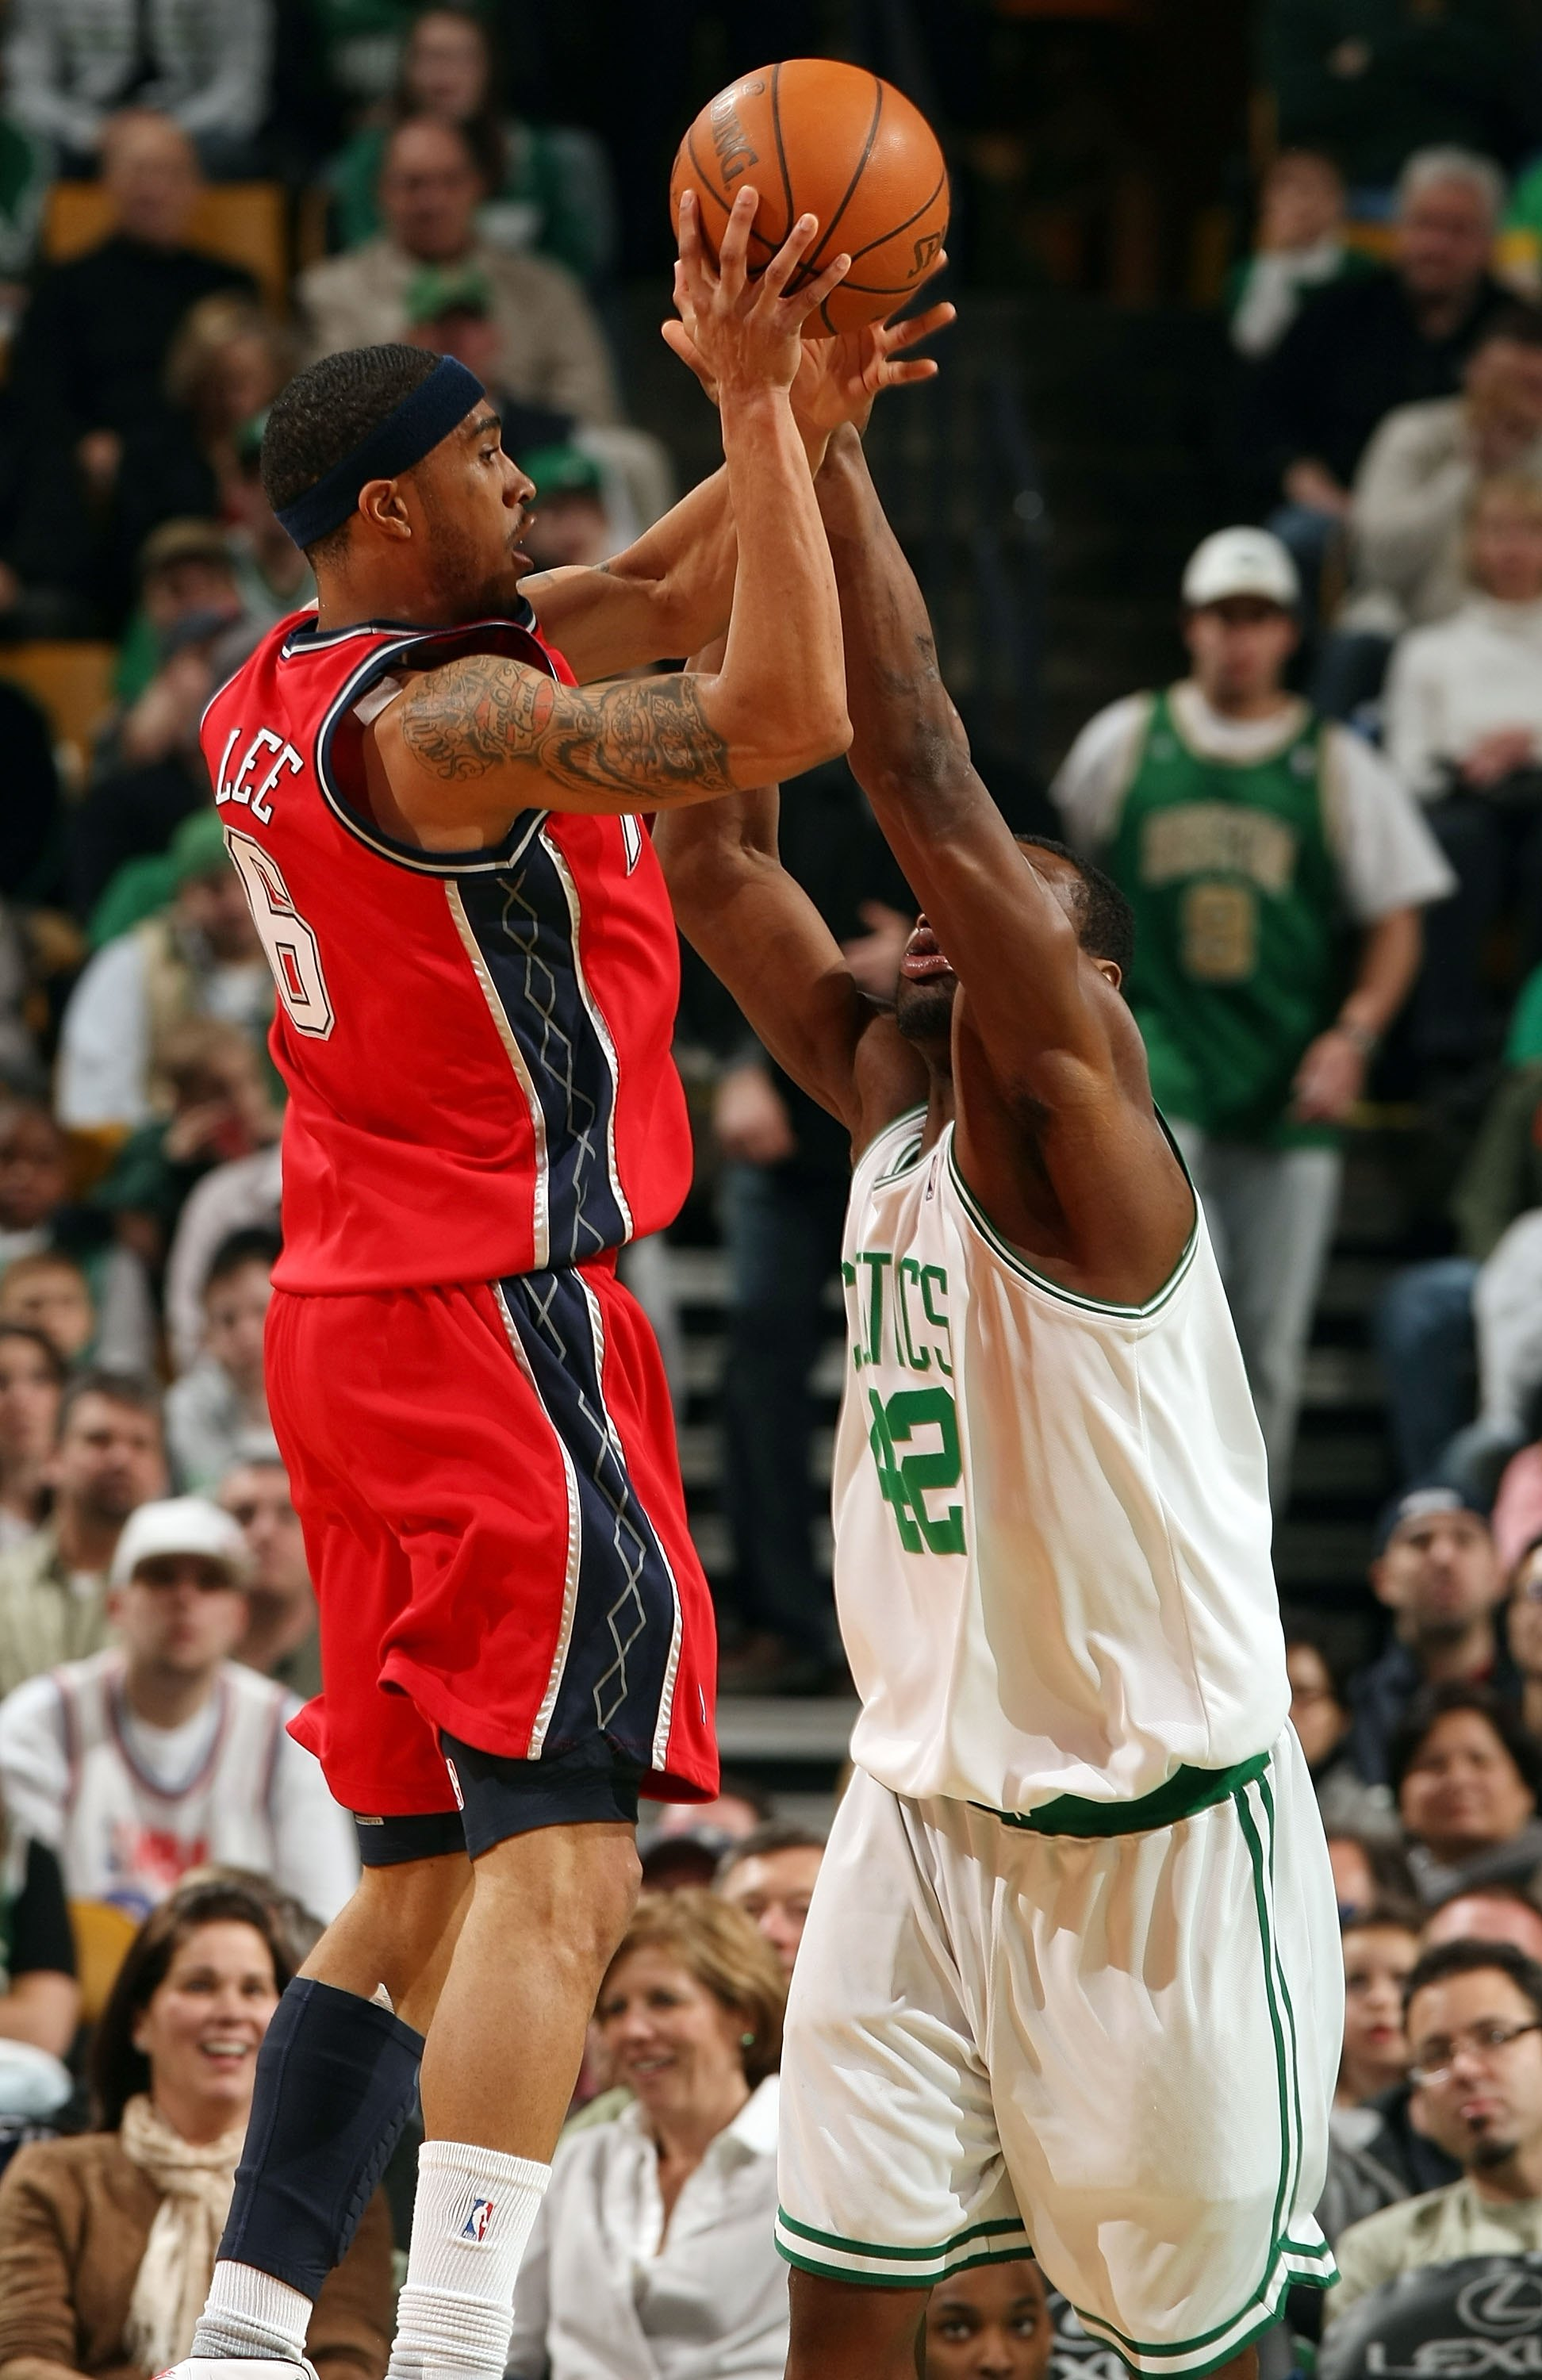 BOSTON - FEBRUARY 27:  Courtney Lee #6 of the New Jersey Nets takes a shot as Tony Allen #42 of the Boston Celtics defends at the TD Garden on February 27, 2010 in Boston, Massachusetts. The Nets defeated the Celtics 104-96.  NOTE TO USER: User expressly